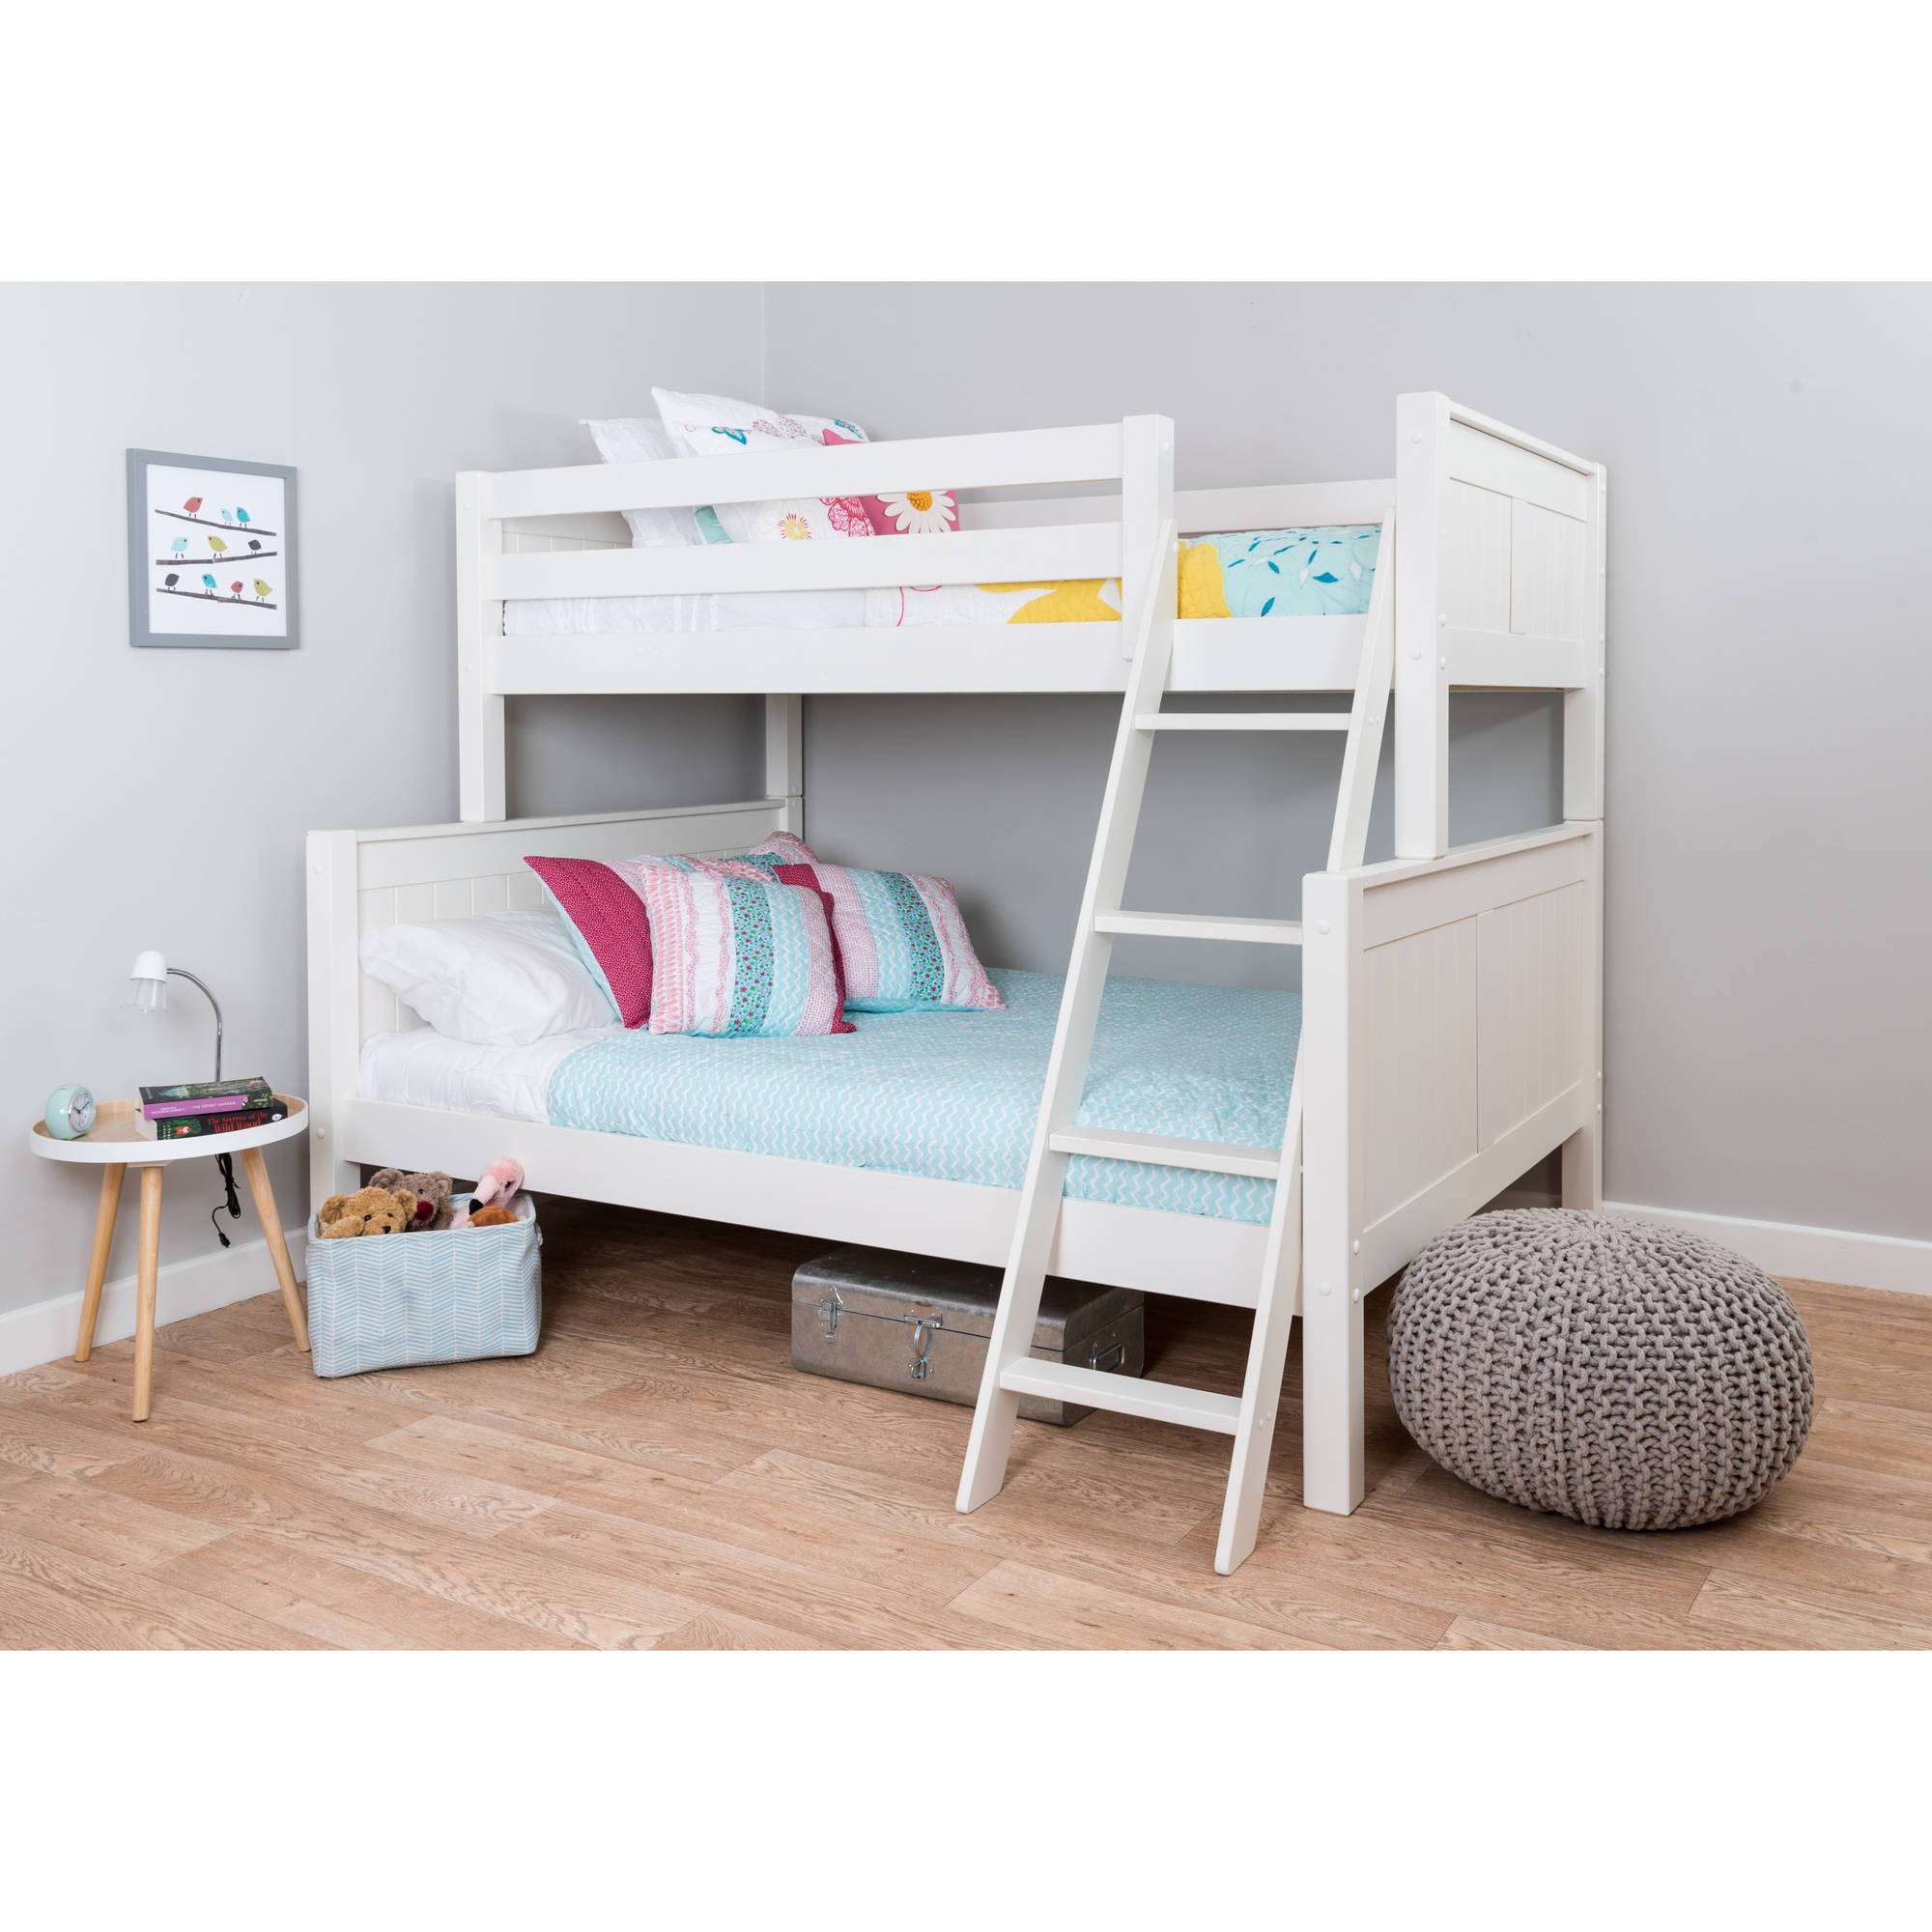 Nui Kids Twin Over Full Wood Bunk Bed White Walmart Com